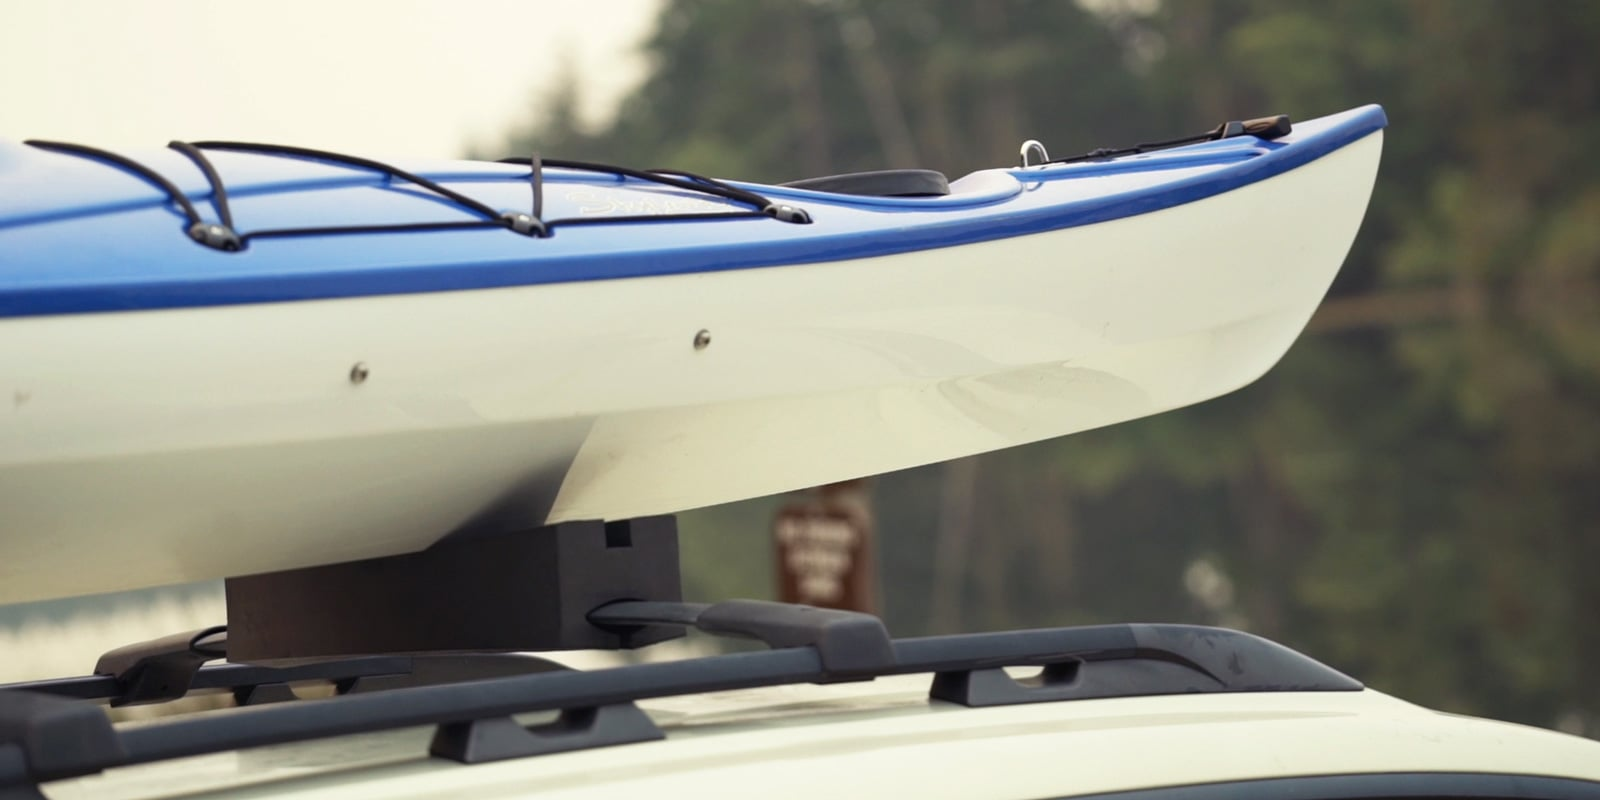 hight resolution of transporting your kayak or canoe